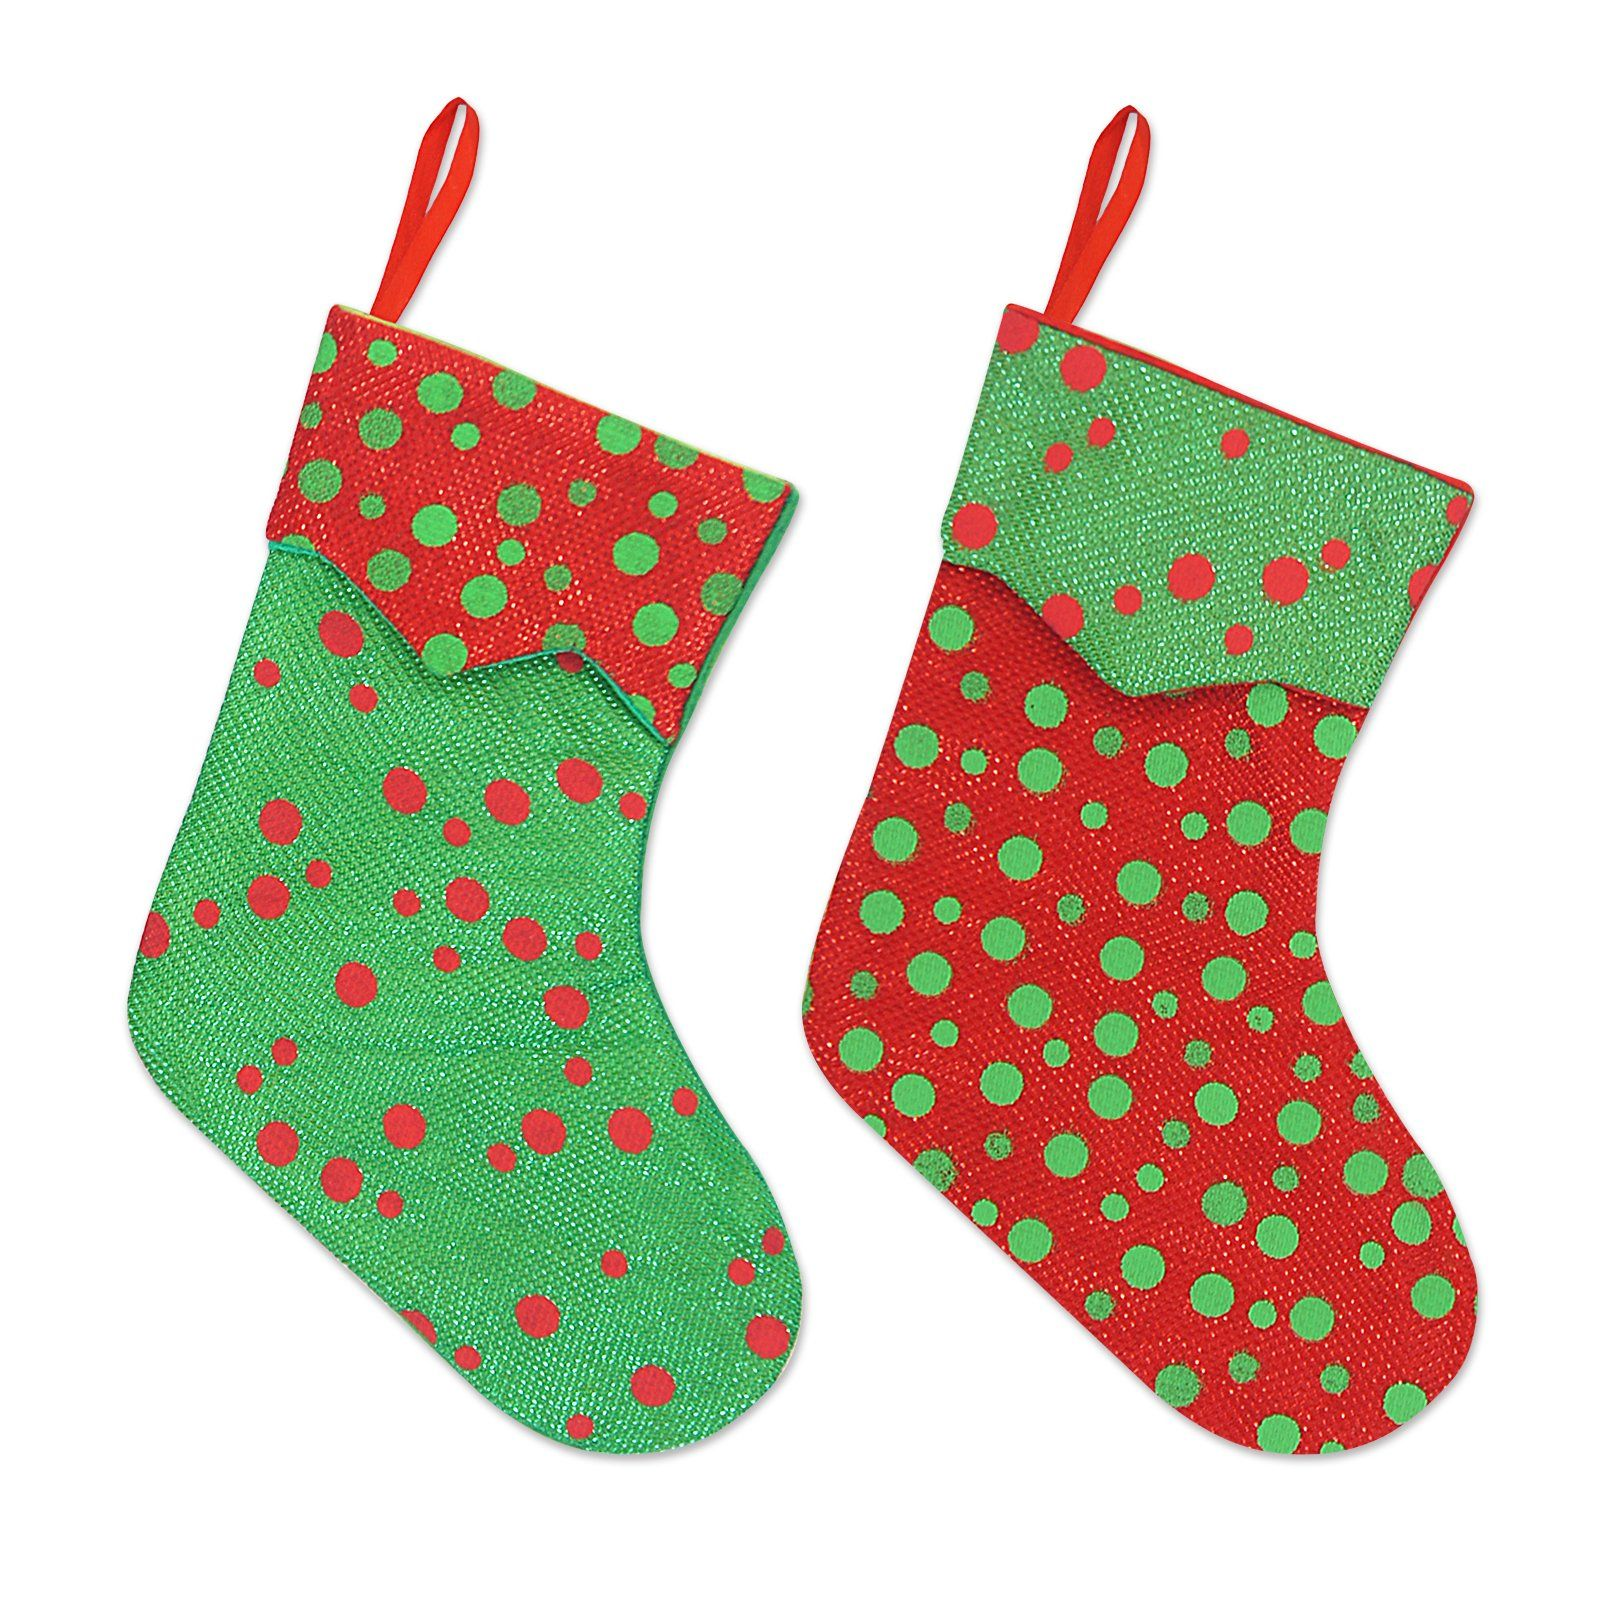 Ivenf 12 Pack 7 Glitter Round Dots Mini Christmas Stockings Gift Card Bags Holders Bul Christmas Stocking Gifts Personalised Gift Shop Mini Christmas Stockings